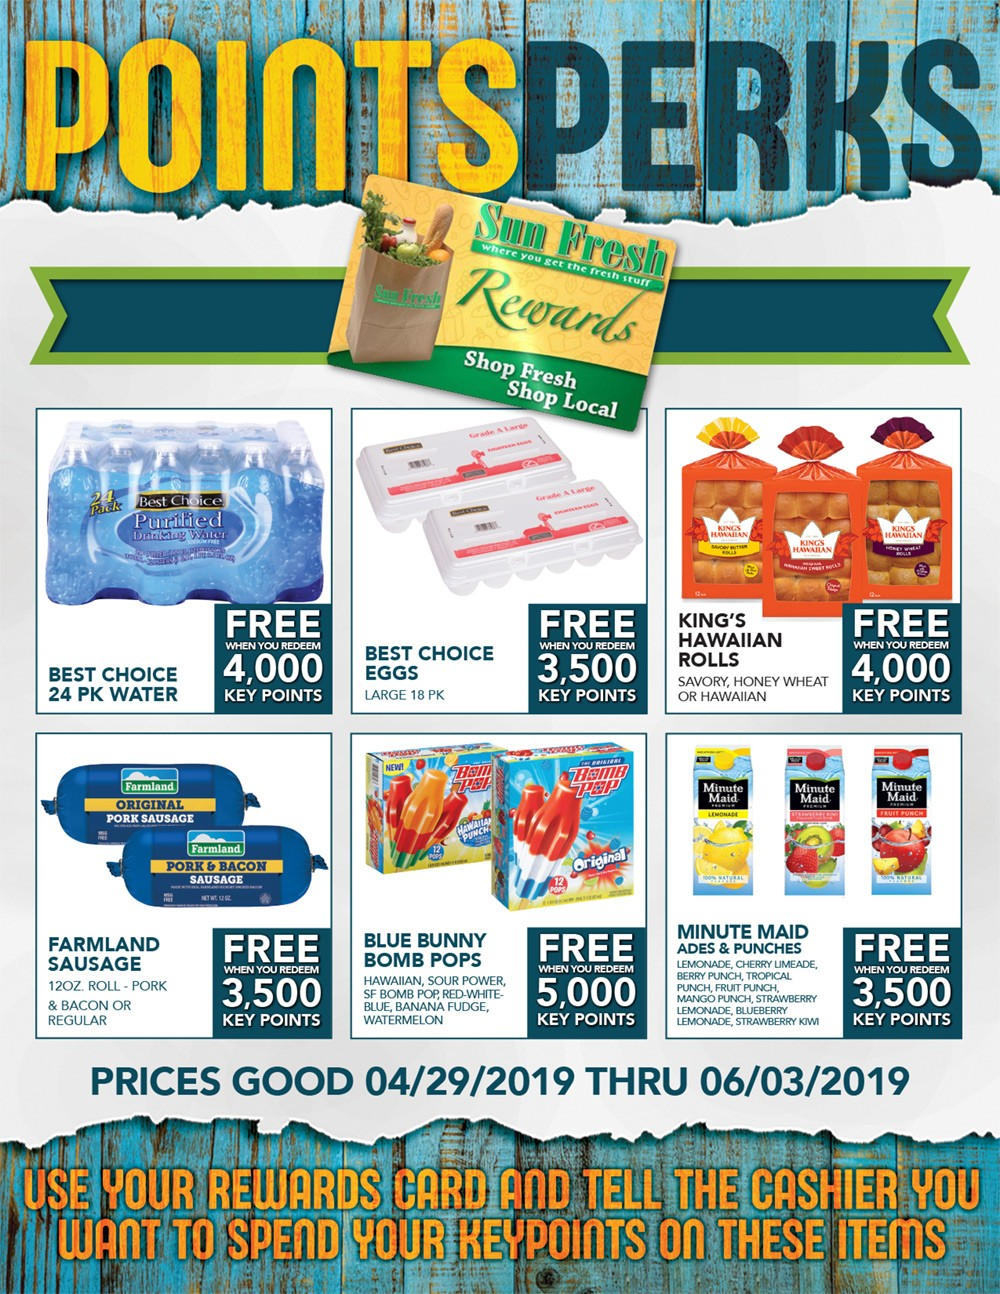 Points Perks: Prices good 4/29/19 thru 6/3/19 - Use your rewards card and tell teh cashier you want to spend your keypoints on these items.